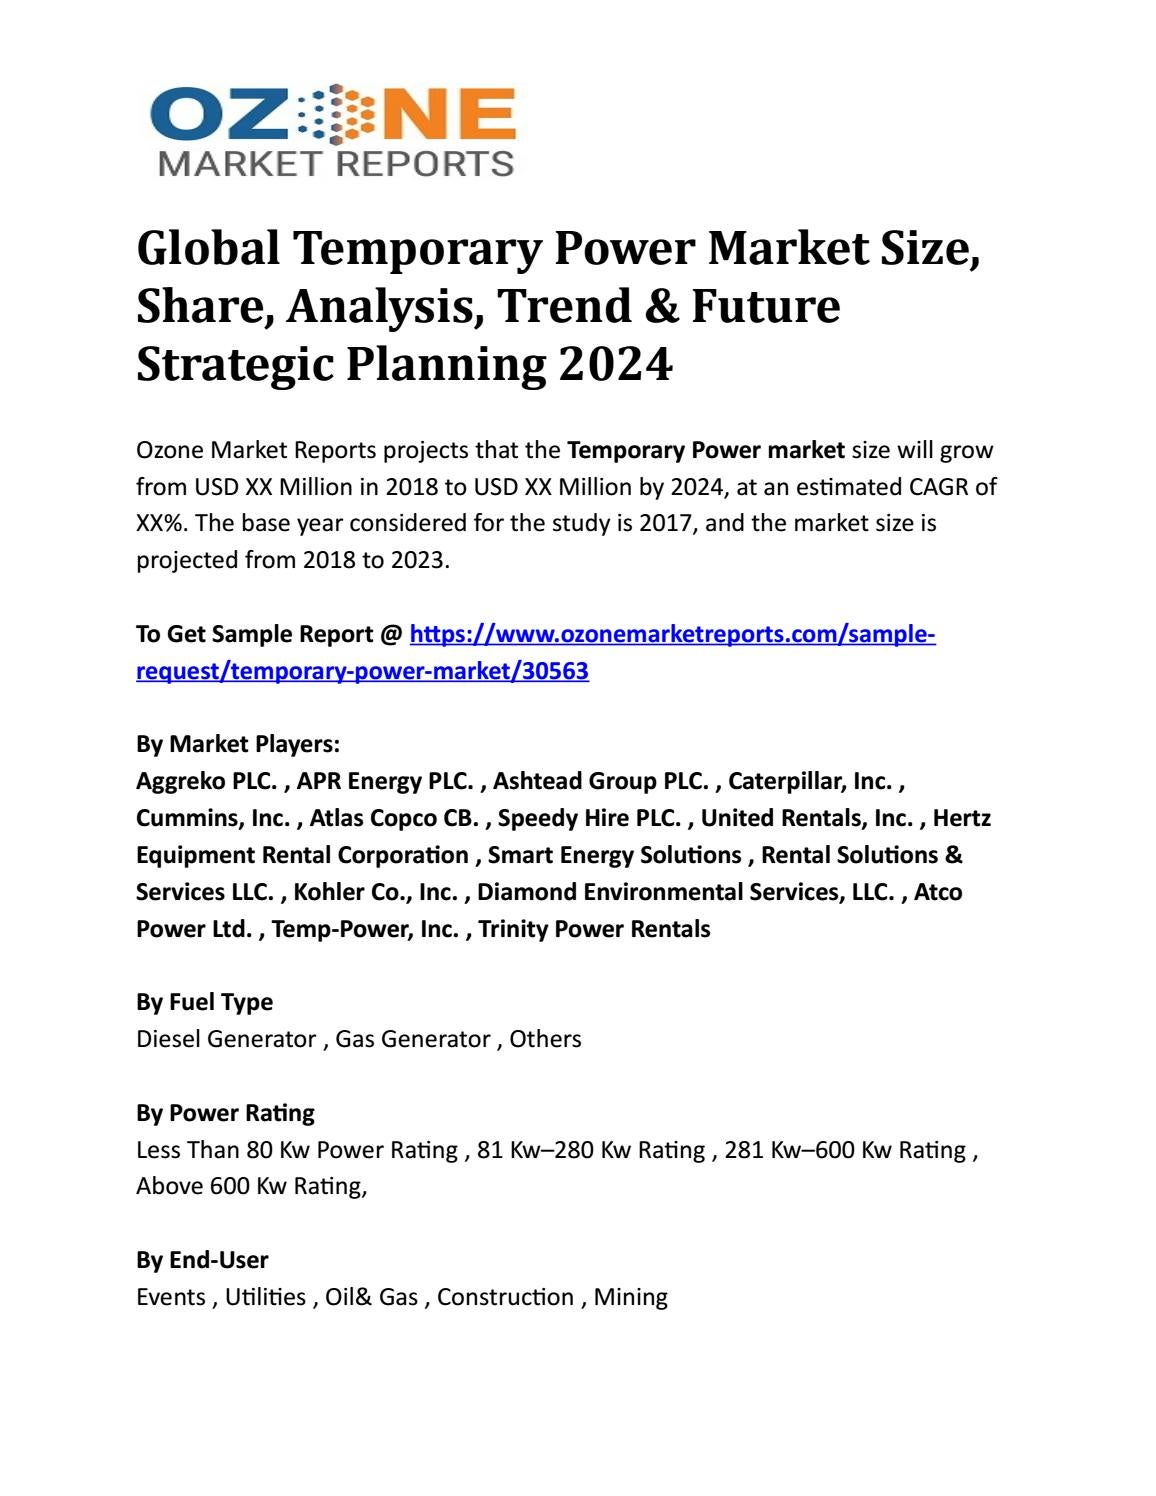 Global Temporary Power Market Size, Share, Analysis, Trend